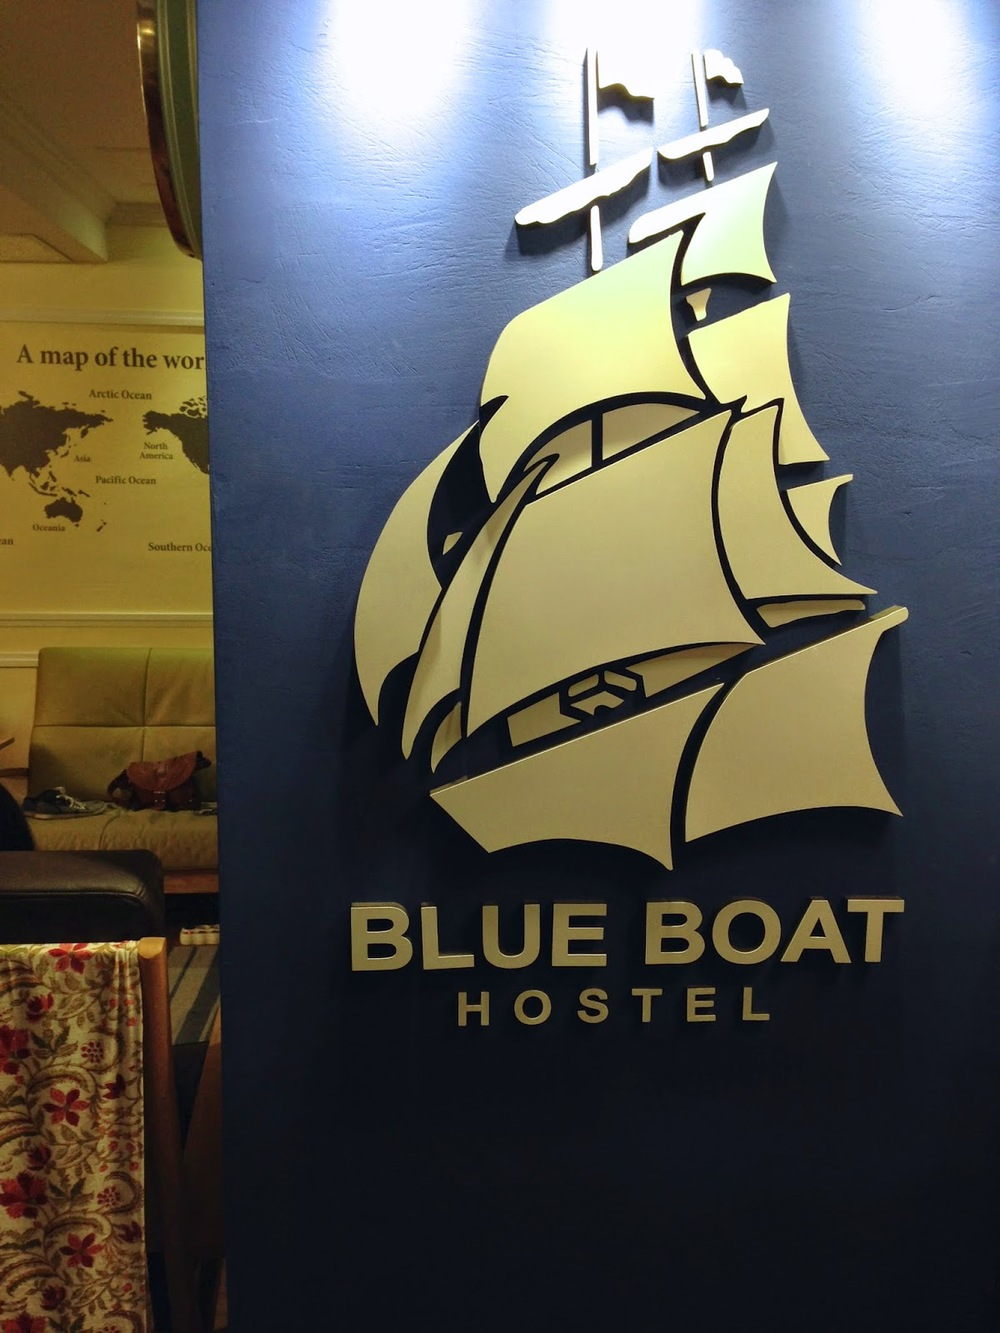 Blue Boat Hostel